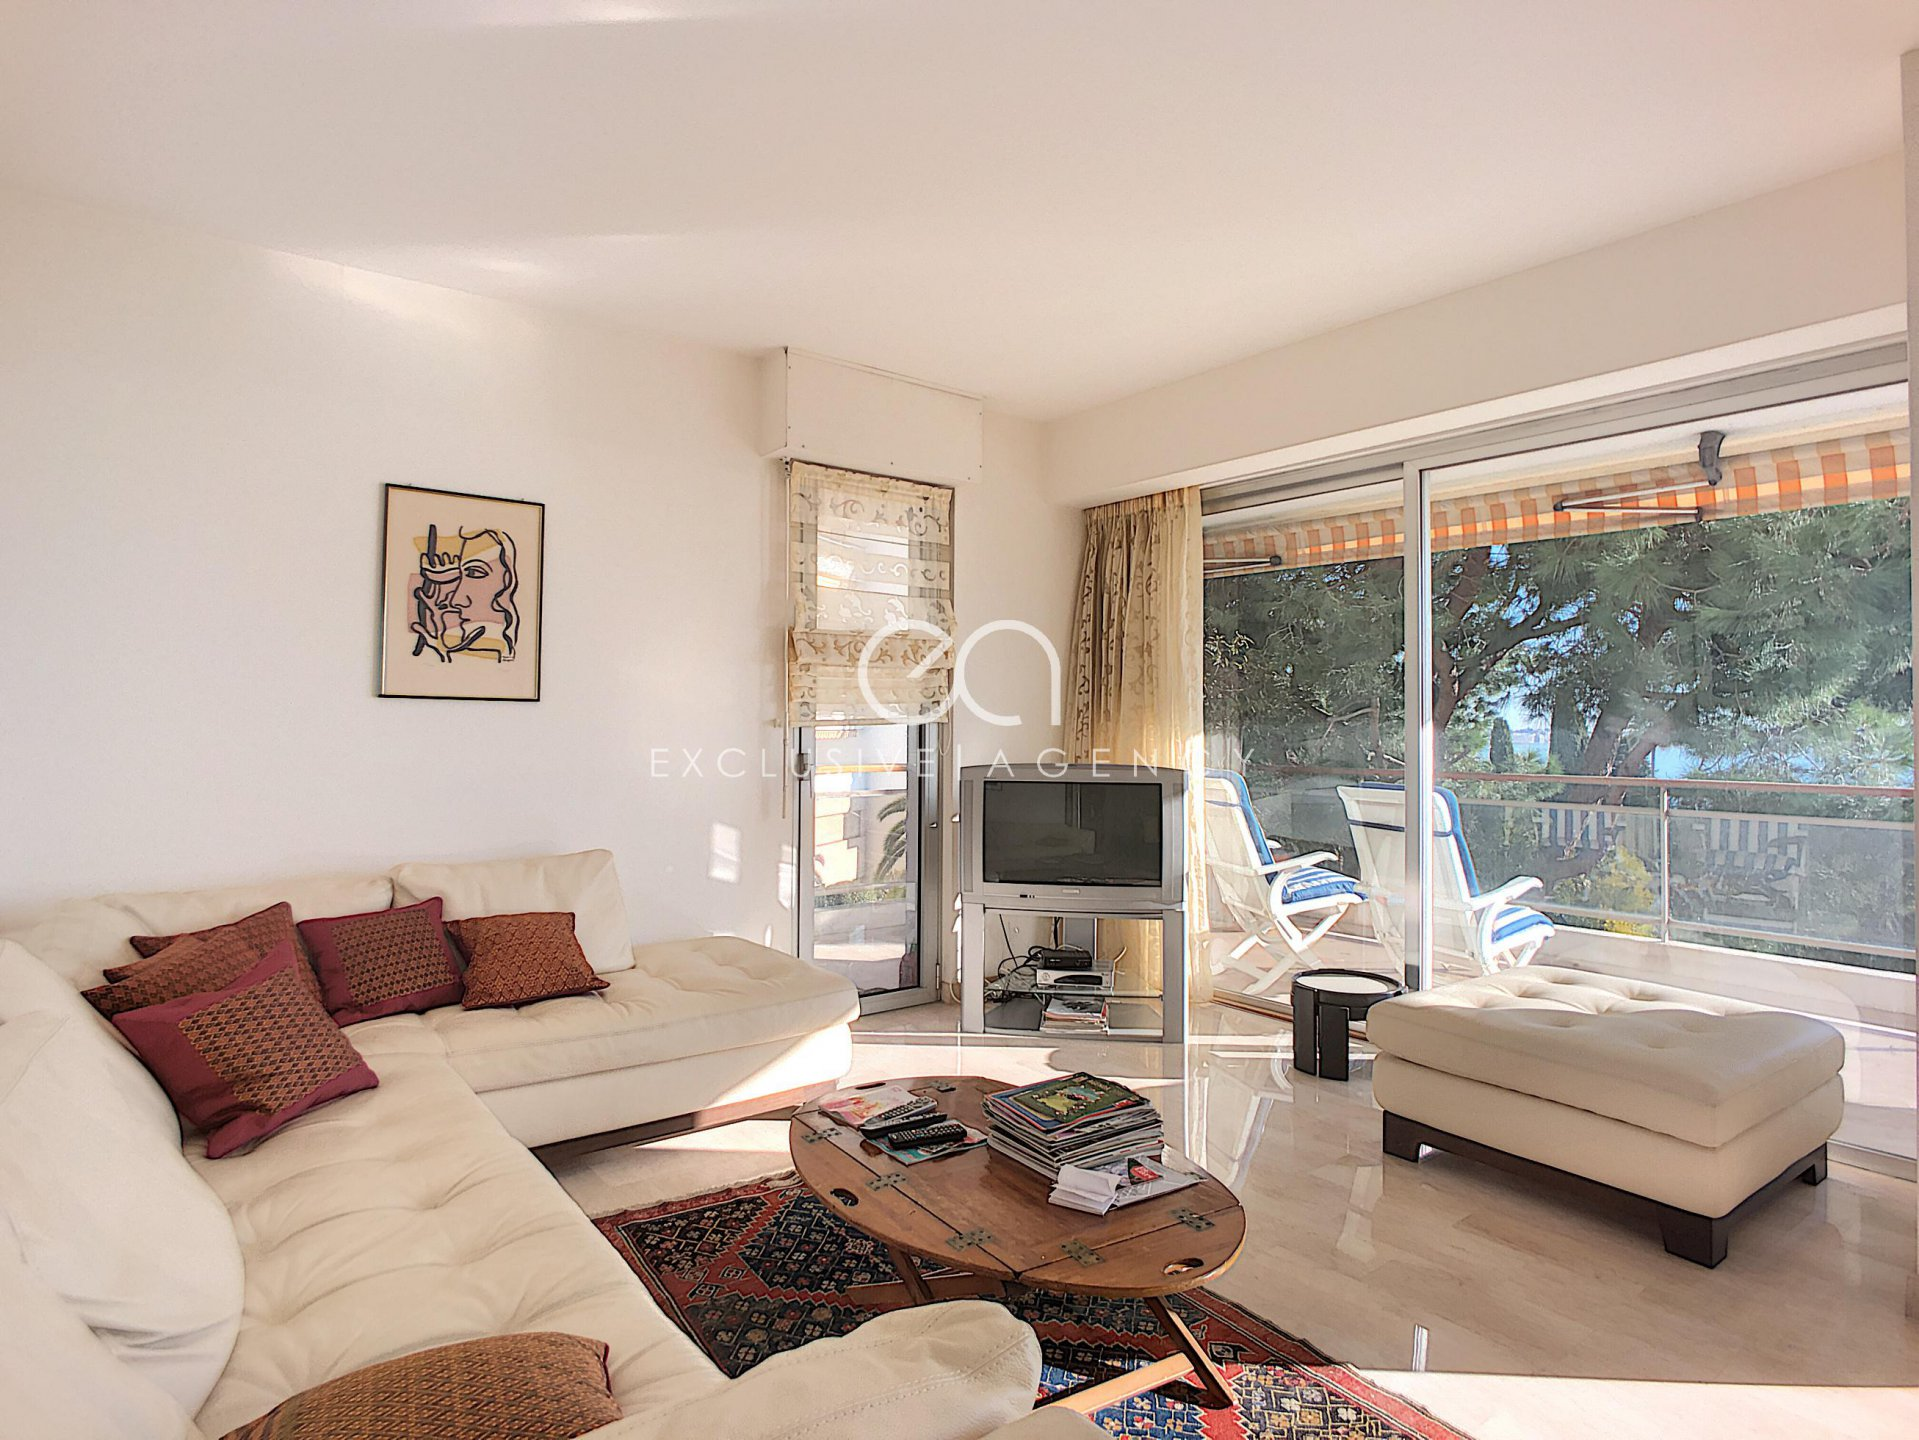 For sale 96sqm 2-bedroom apartment Cannes Californie with panoramic sea view.